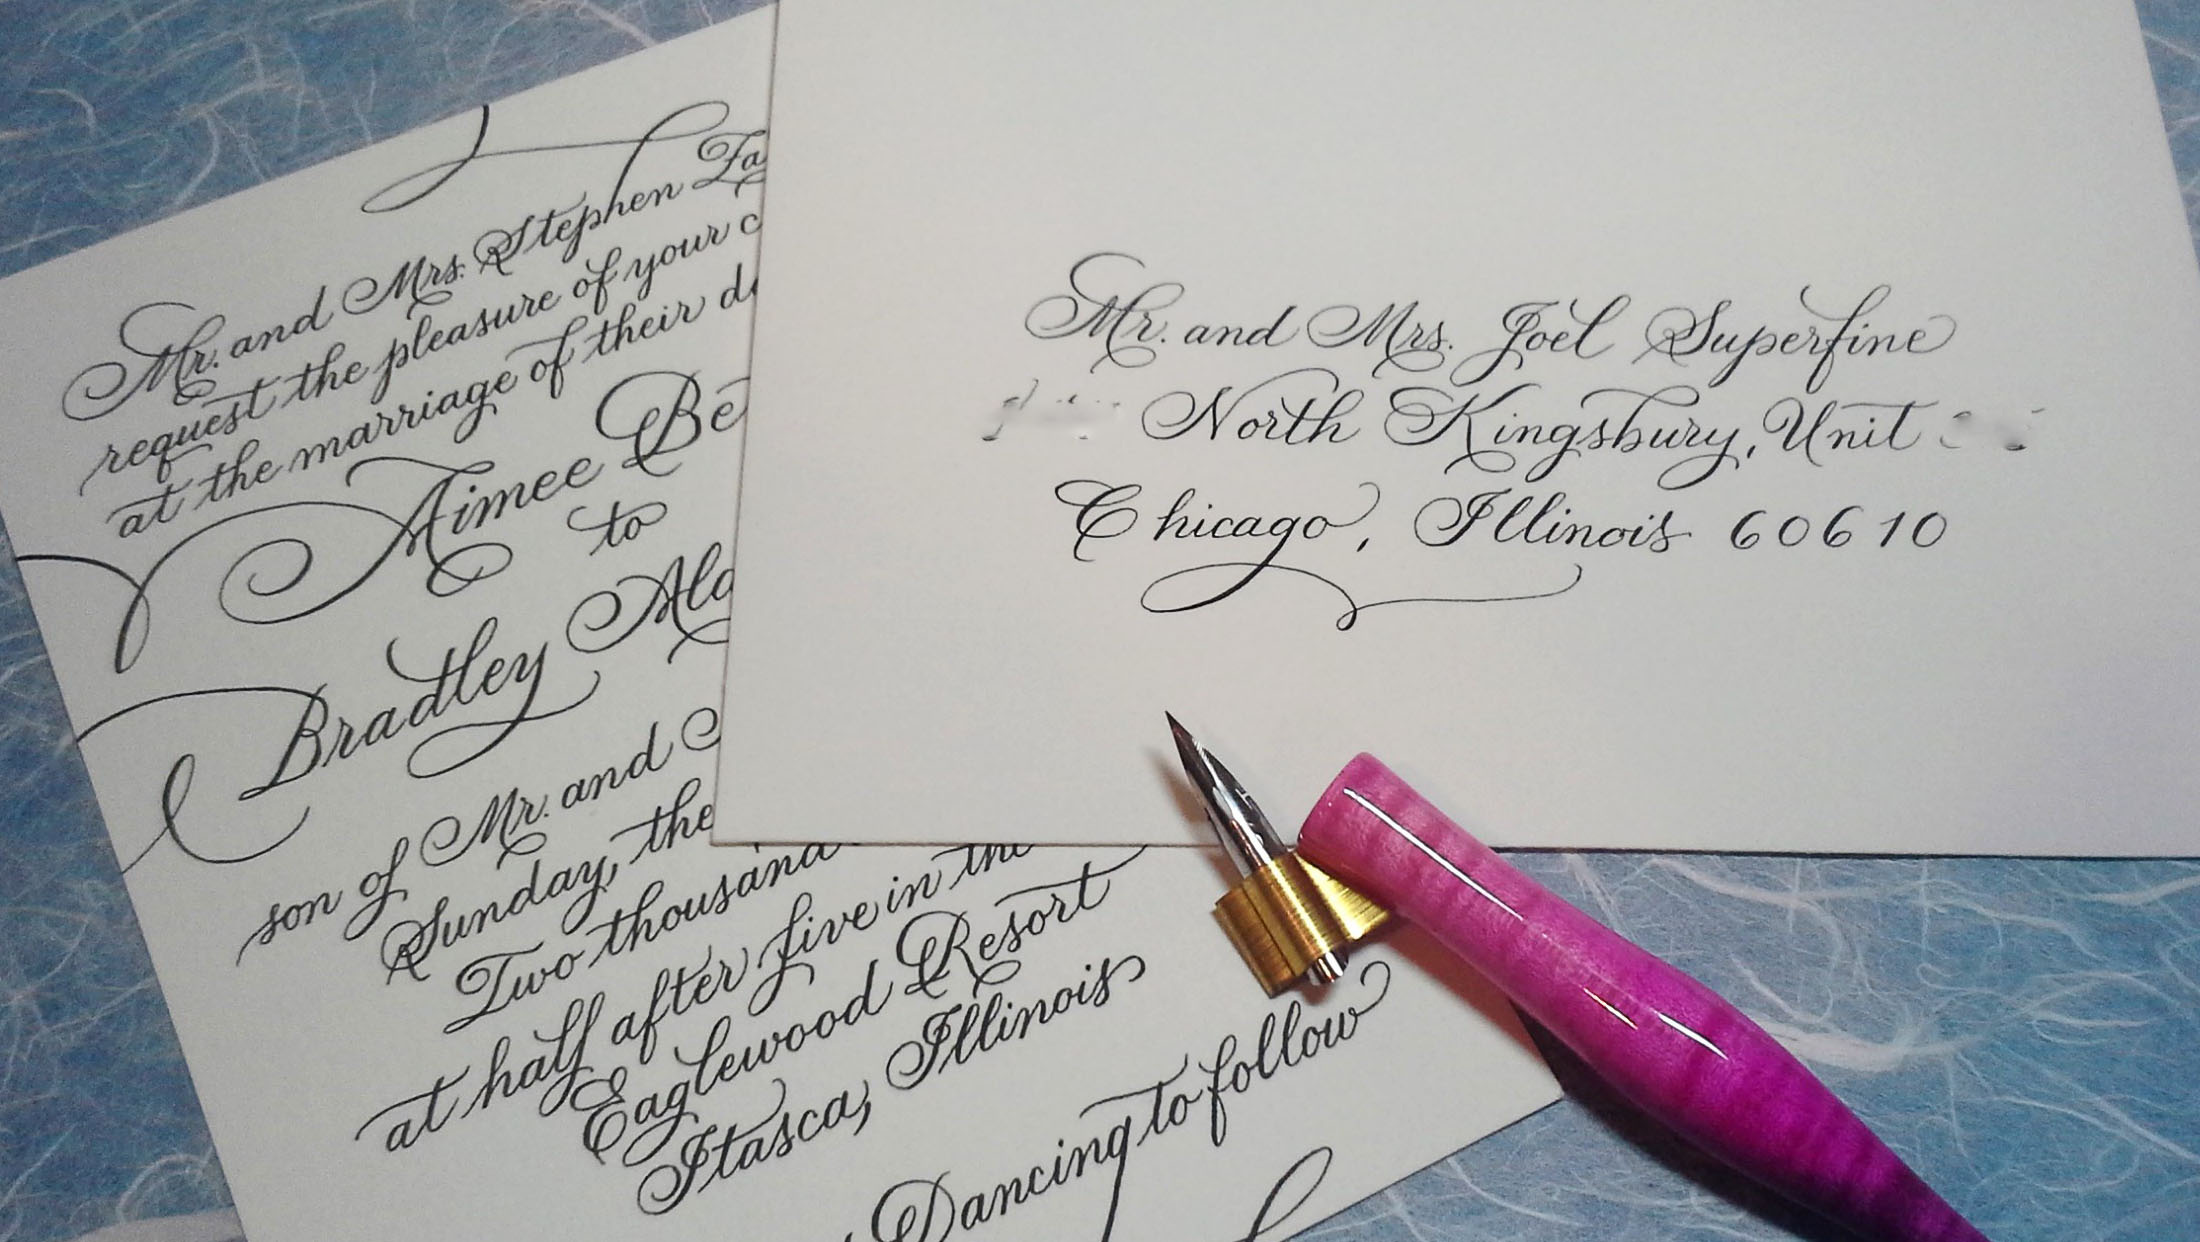 https://drive.google.com/a/chicagocalligraphy.org/file/d/0B7ObnYuMnLZwTlVZX2ZGS0g1aVE/view?usp=sharing